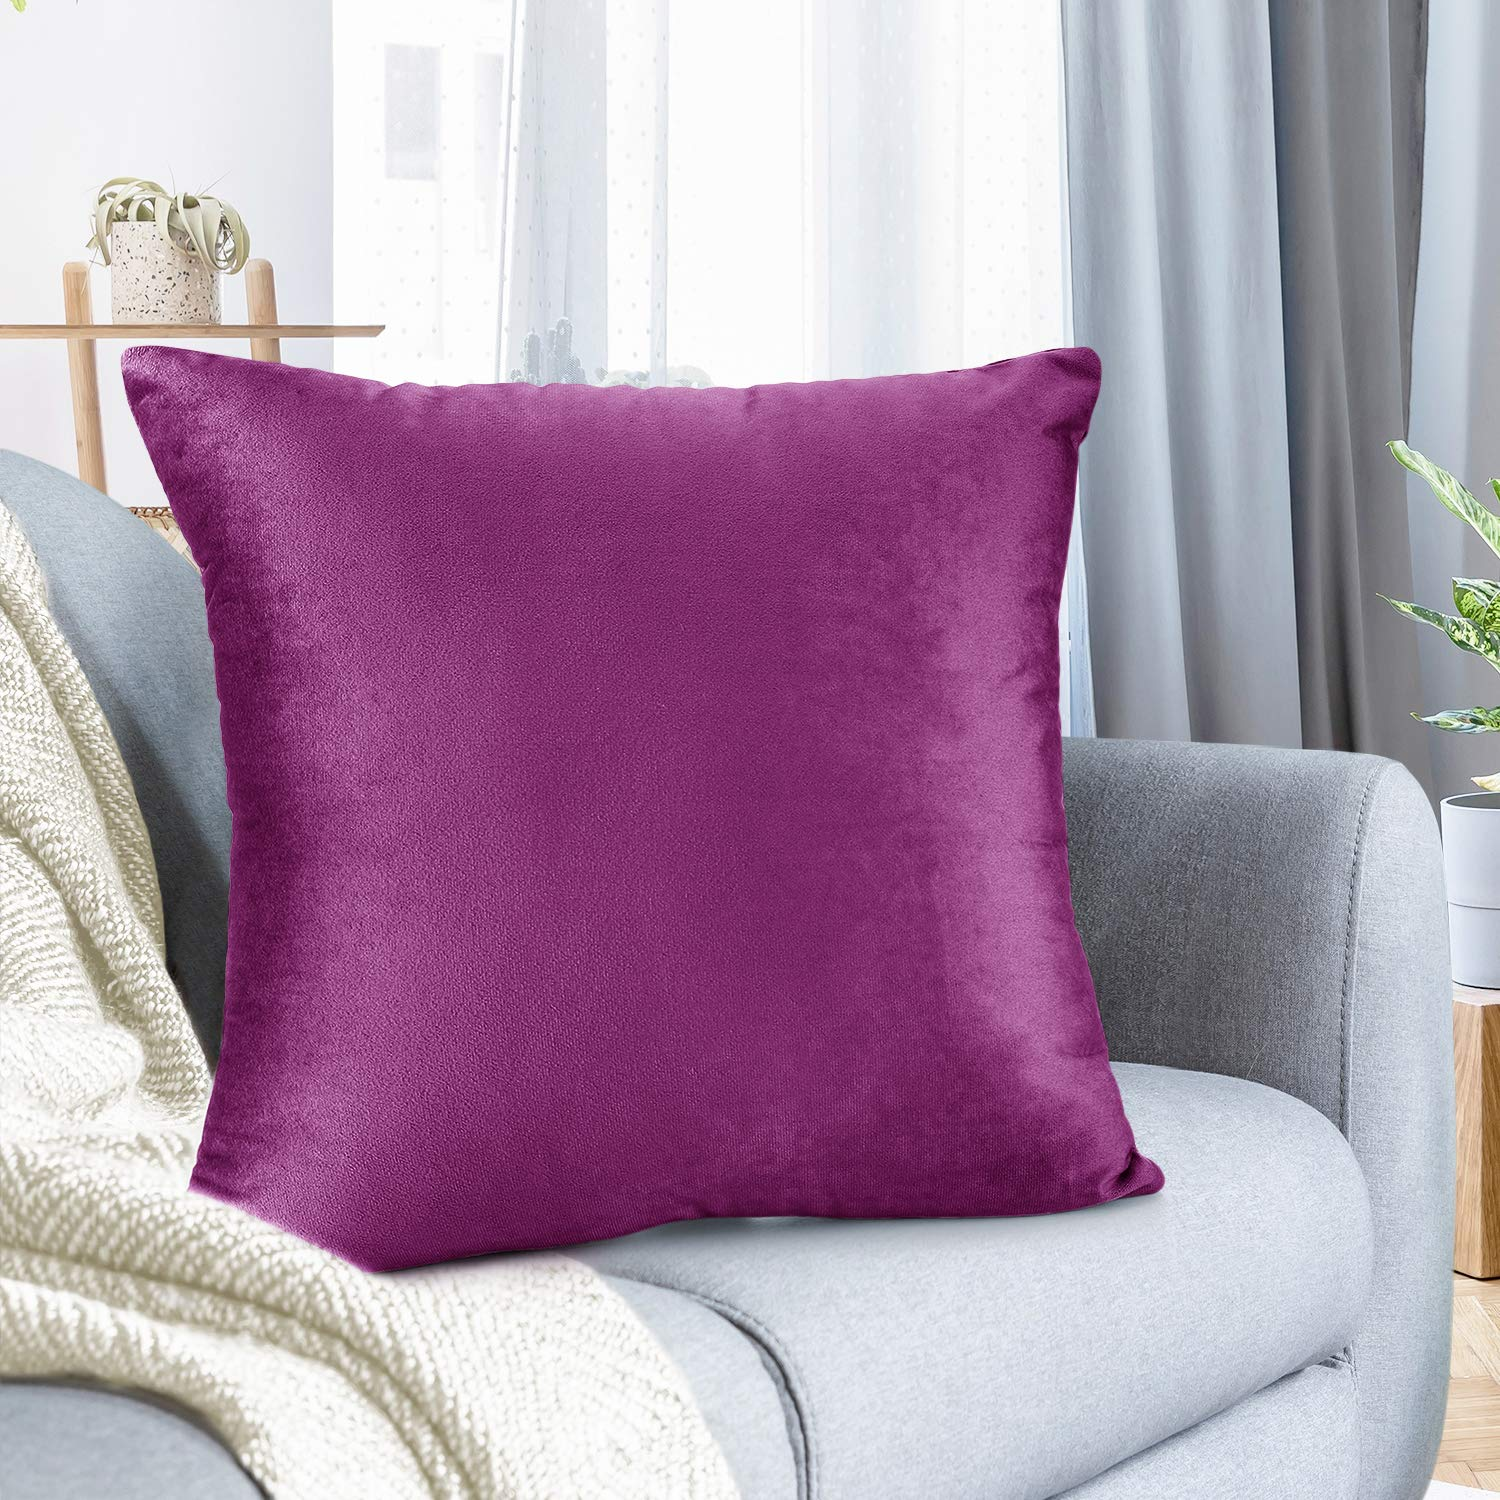 "Nestl Bedding Throw Pillow Cover 18"" x 18"" Soft Square Decorative Throw Pillow Covers Cozy Velvet Cushion Case for Sofa Couch Bedroom - Orchid Purple"